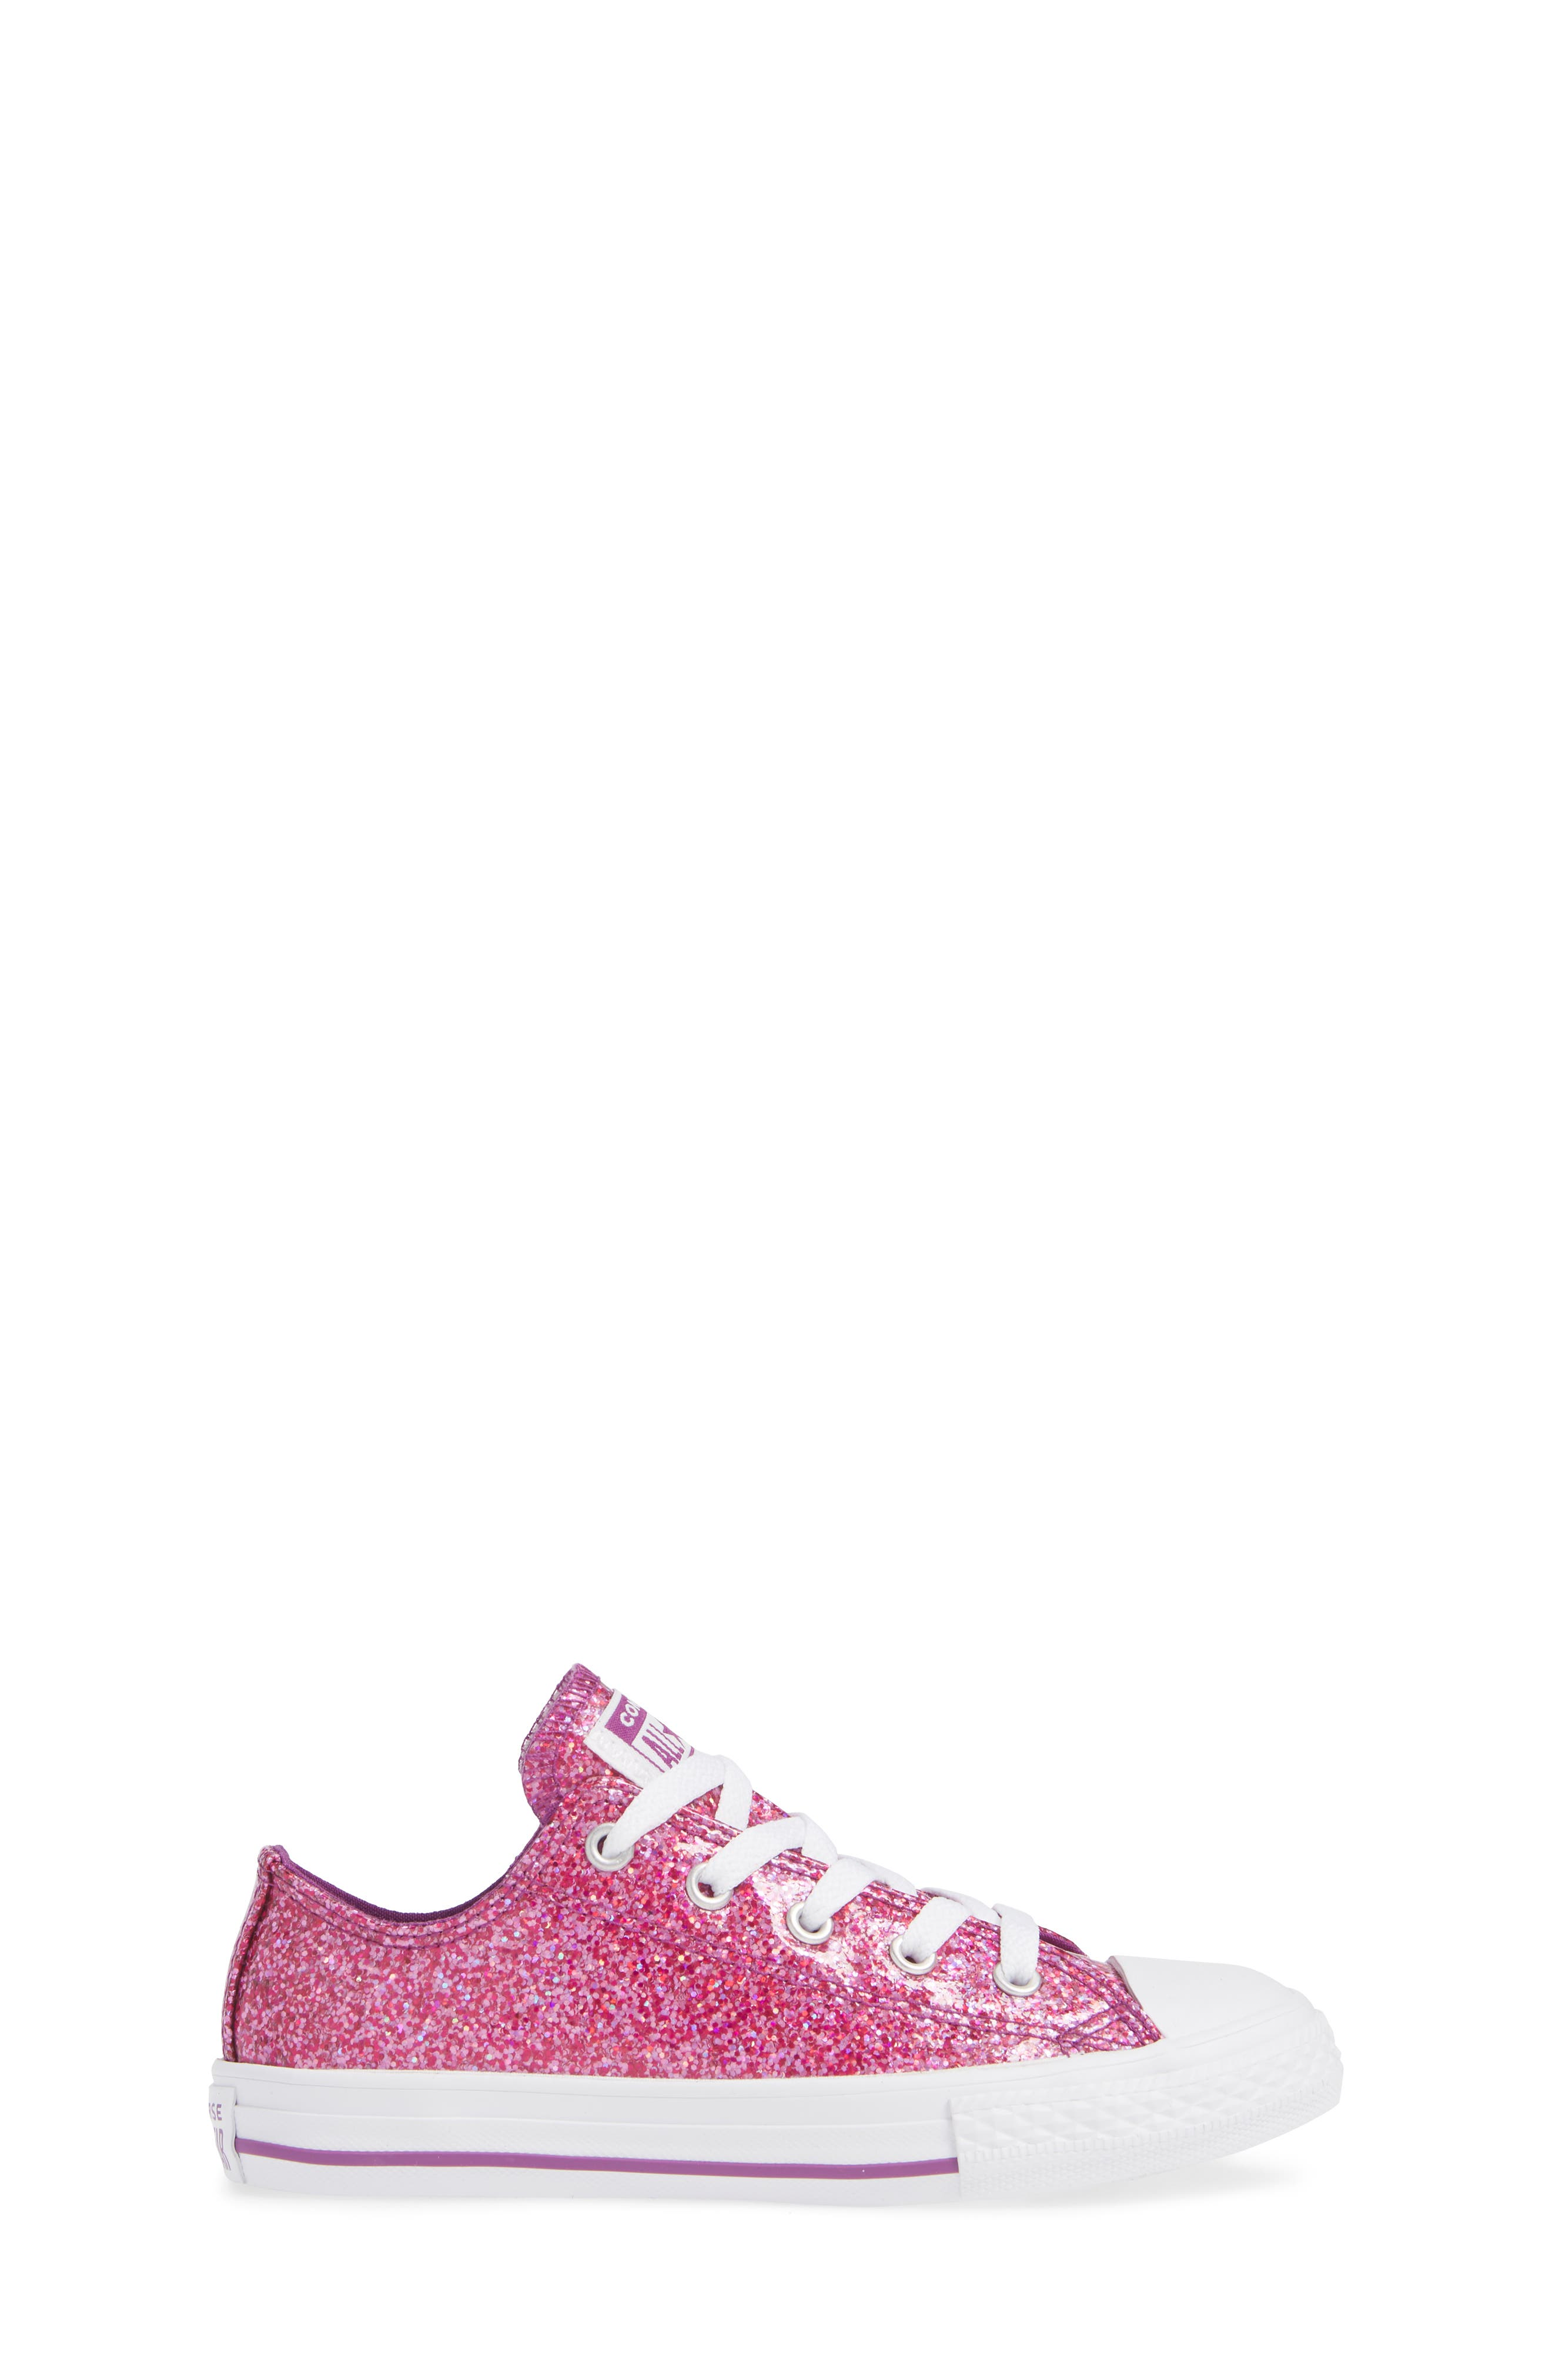 All Star<sup>®</sup> Seasonal Glitter OX Low Top Sneaker,                             Alternate thumbnail 3, color,                             ICON VIOLET